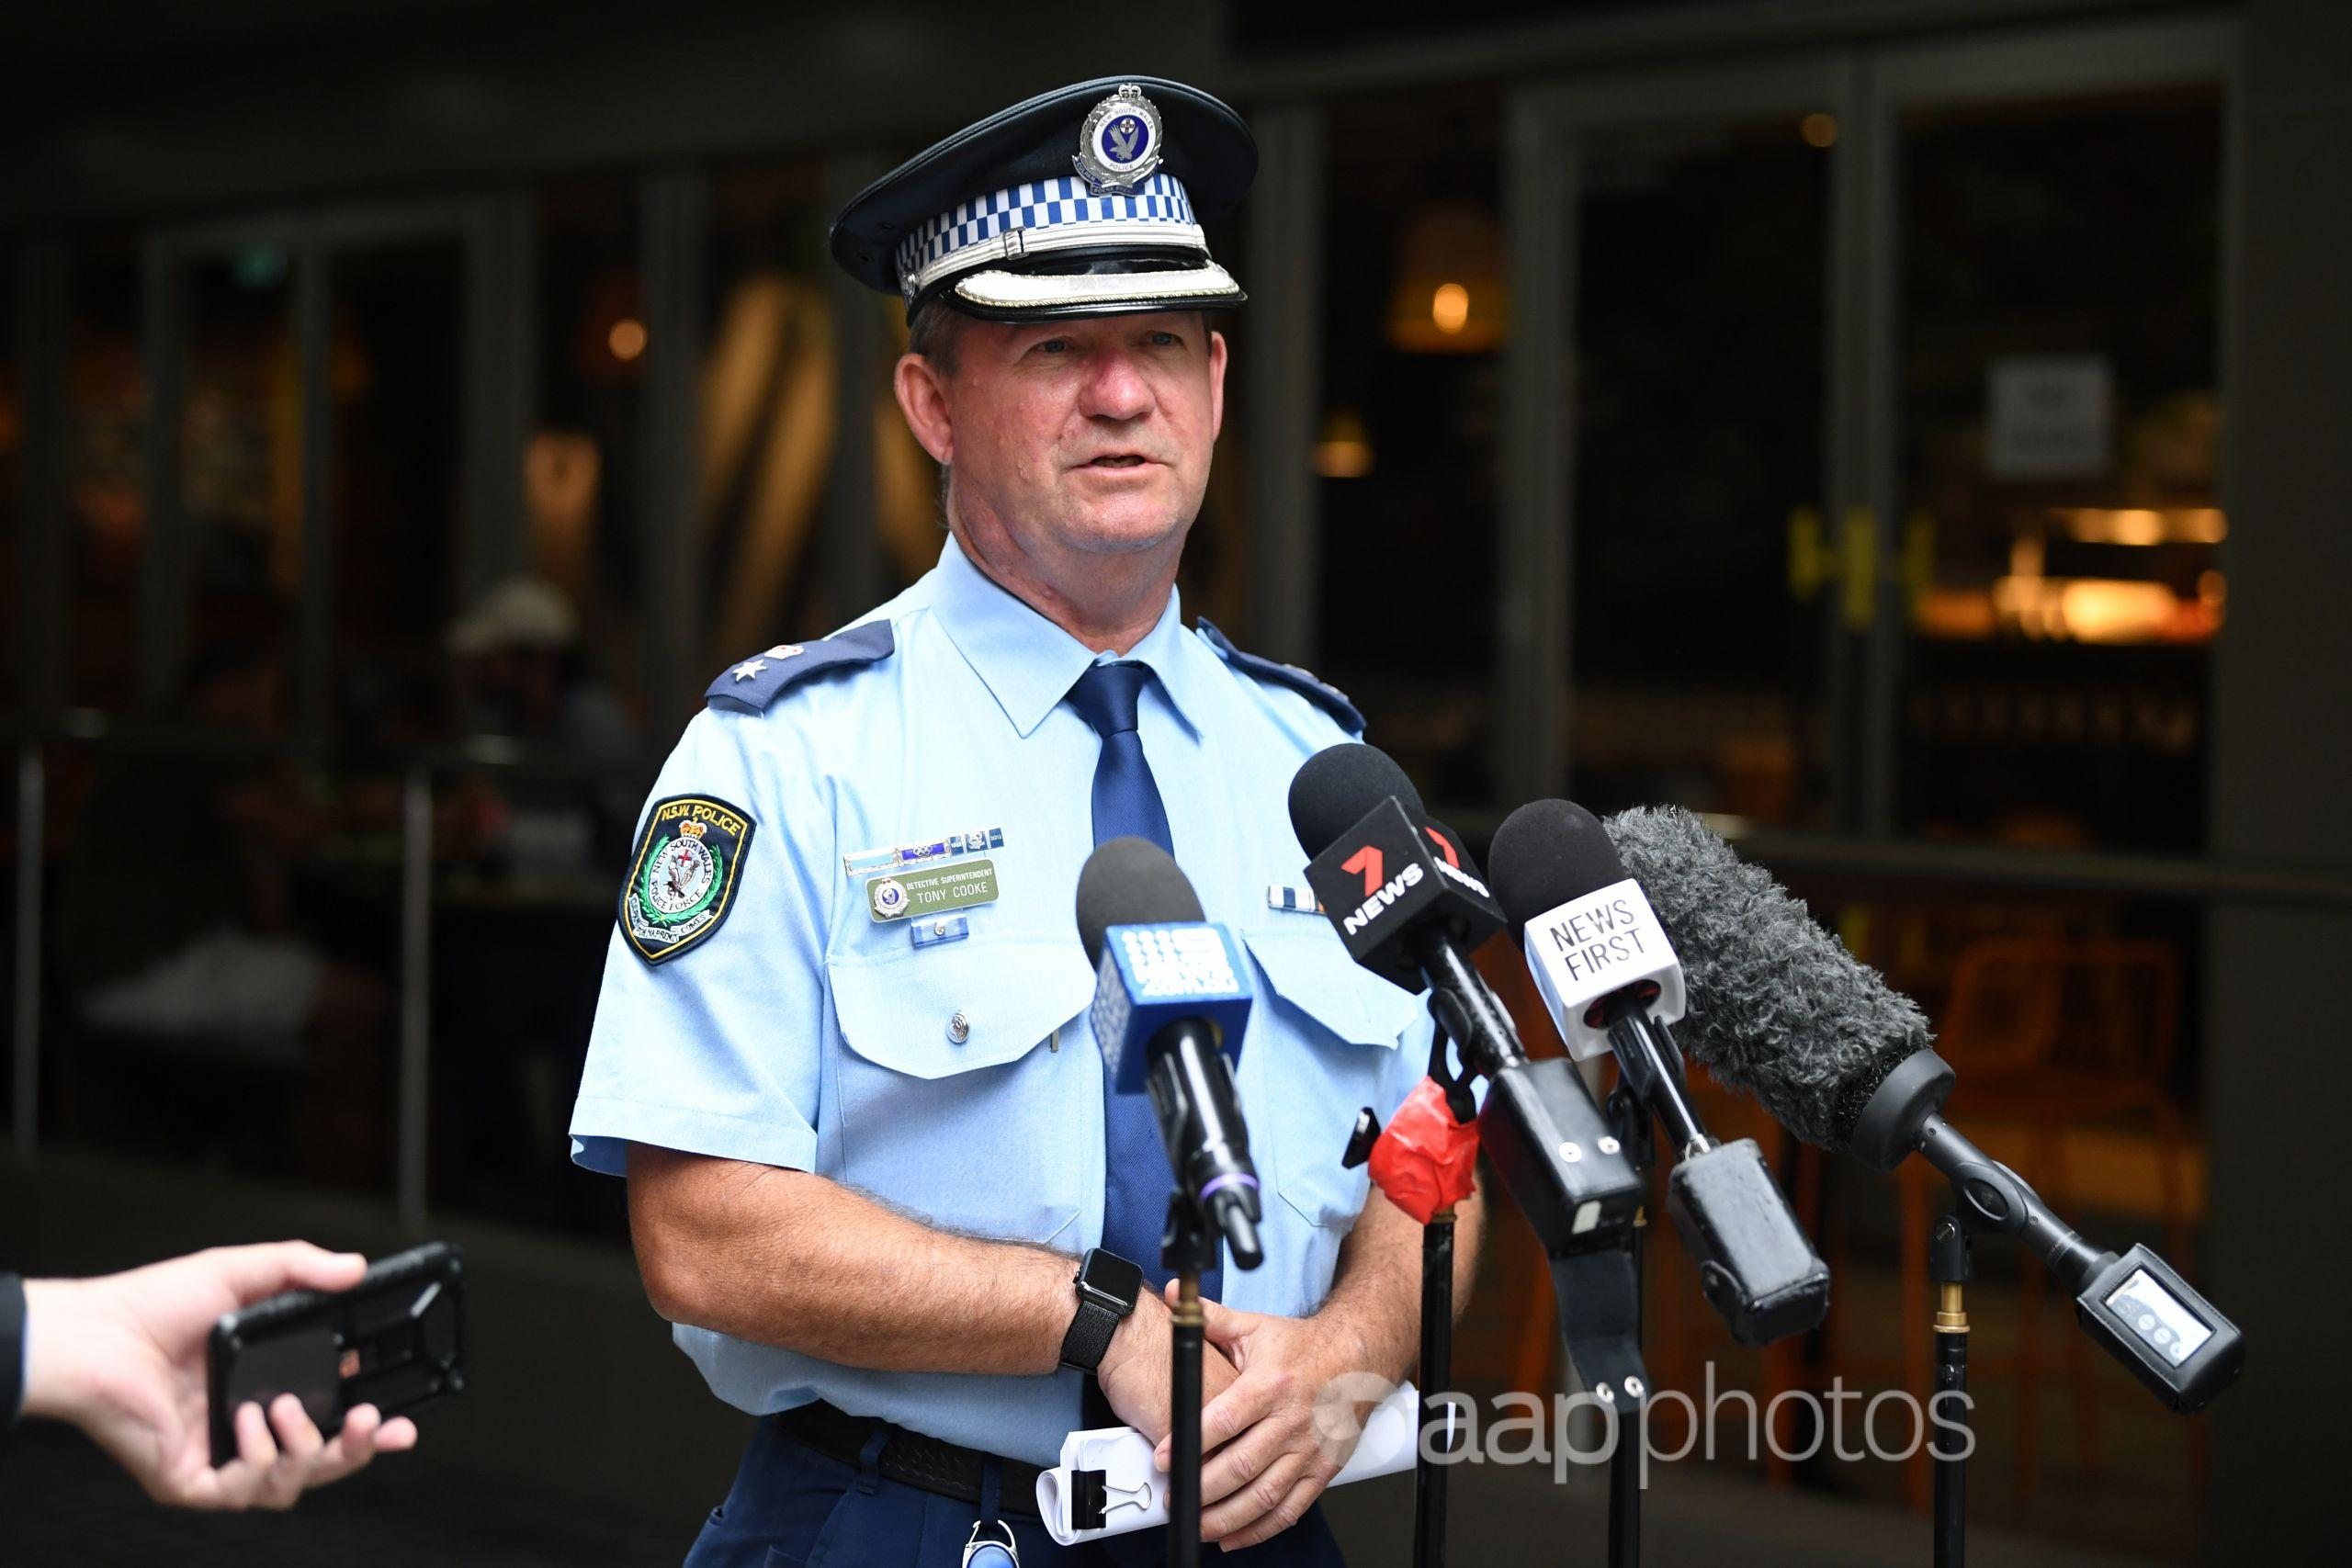 NSW Police Assistant Commissioner Tony Cooke